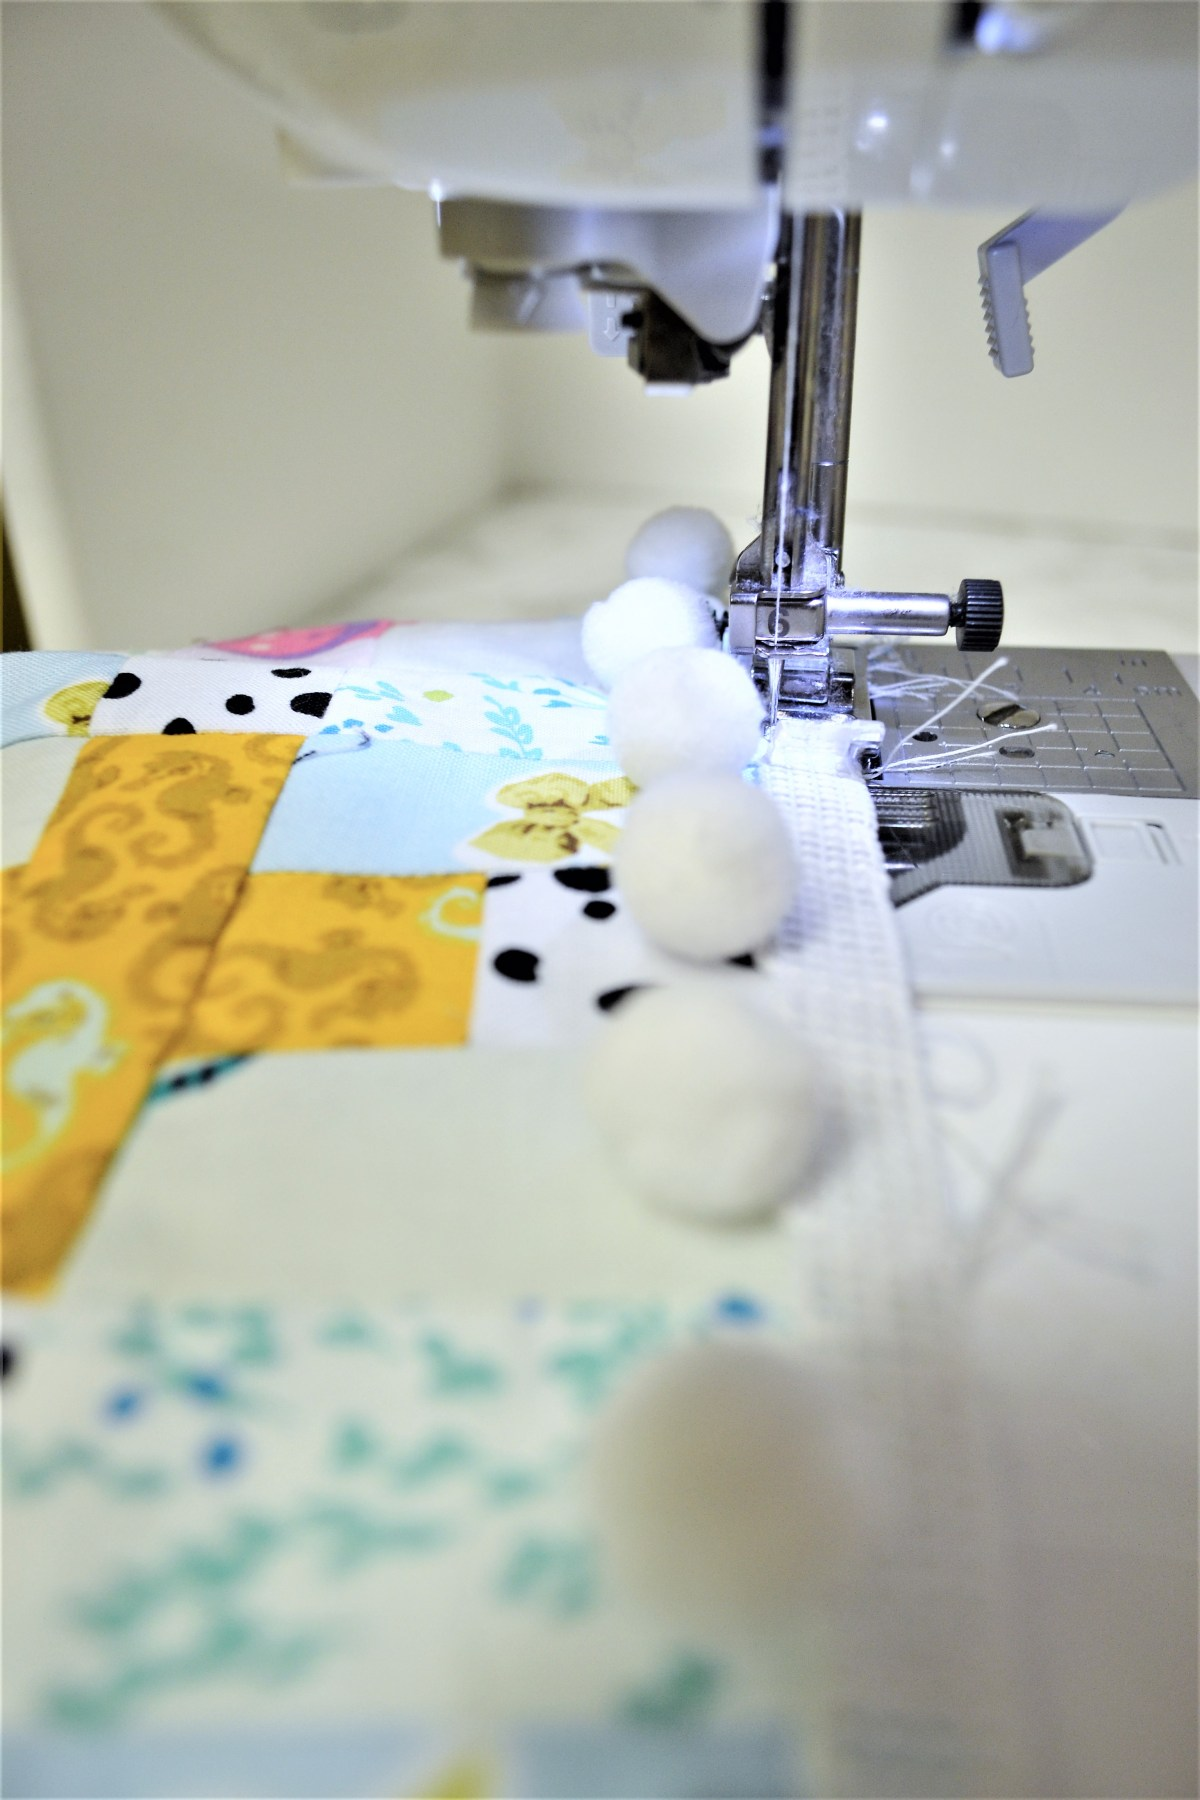 How to Add Pompom Trim to a Quilt - sew pompoms to quilt top